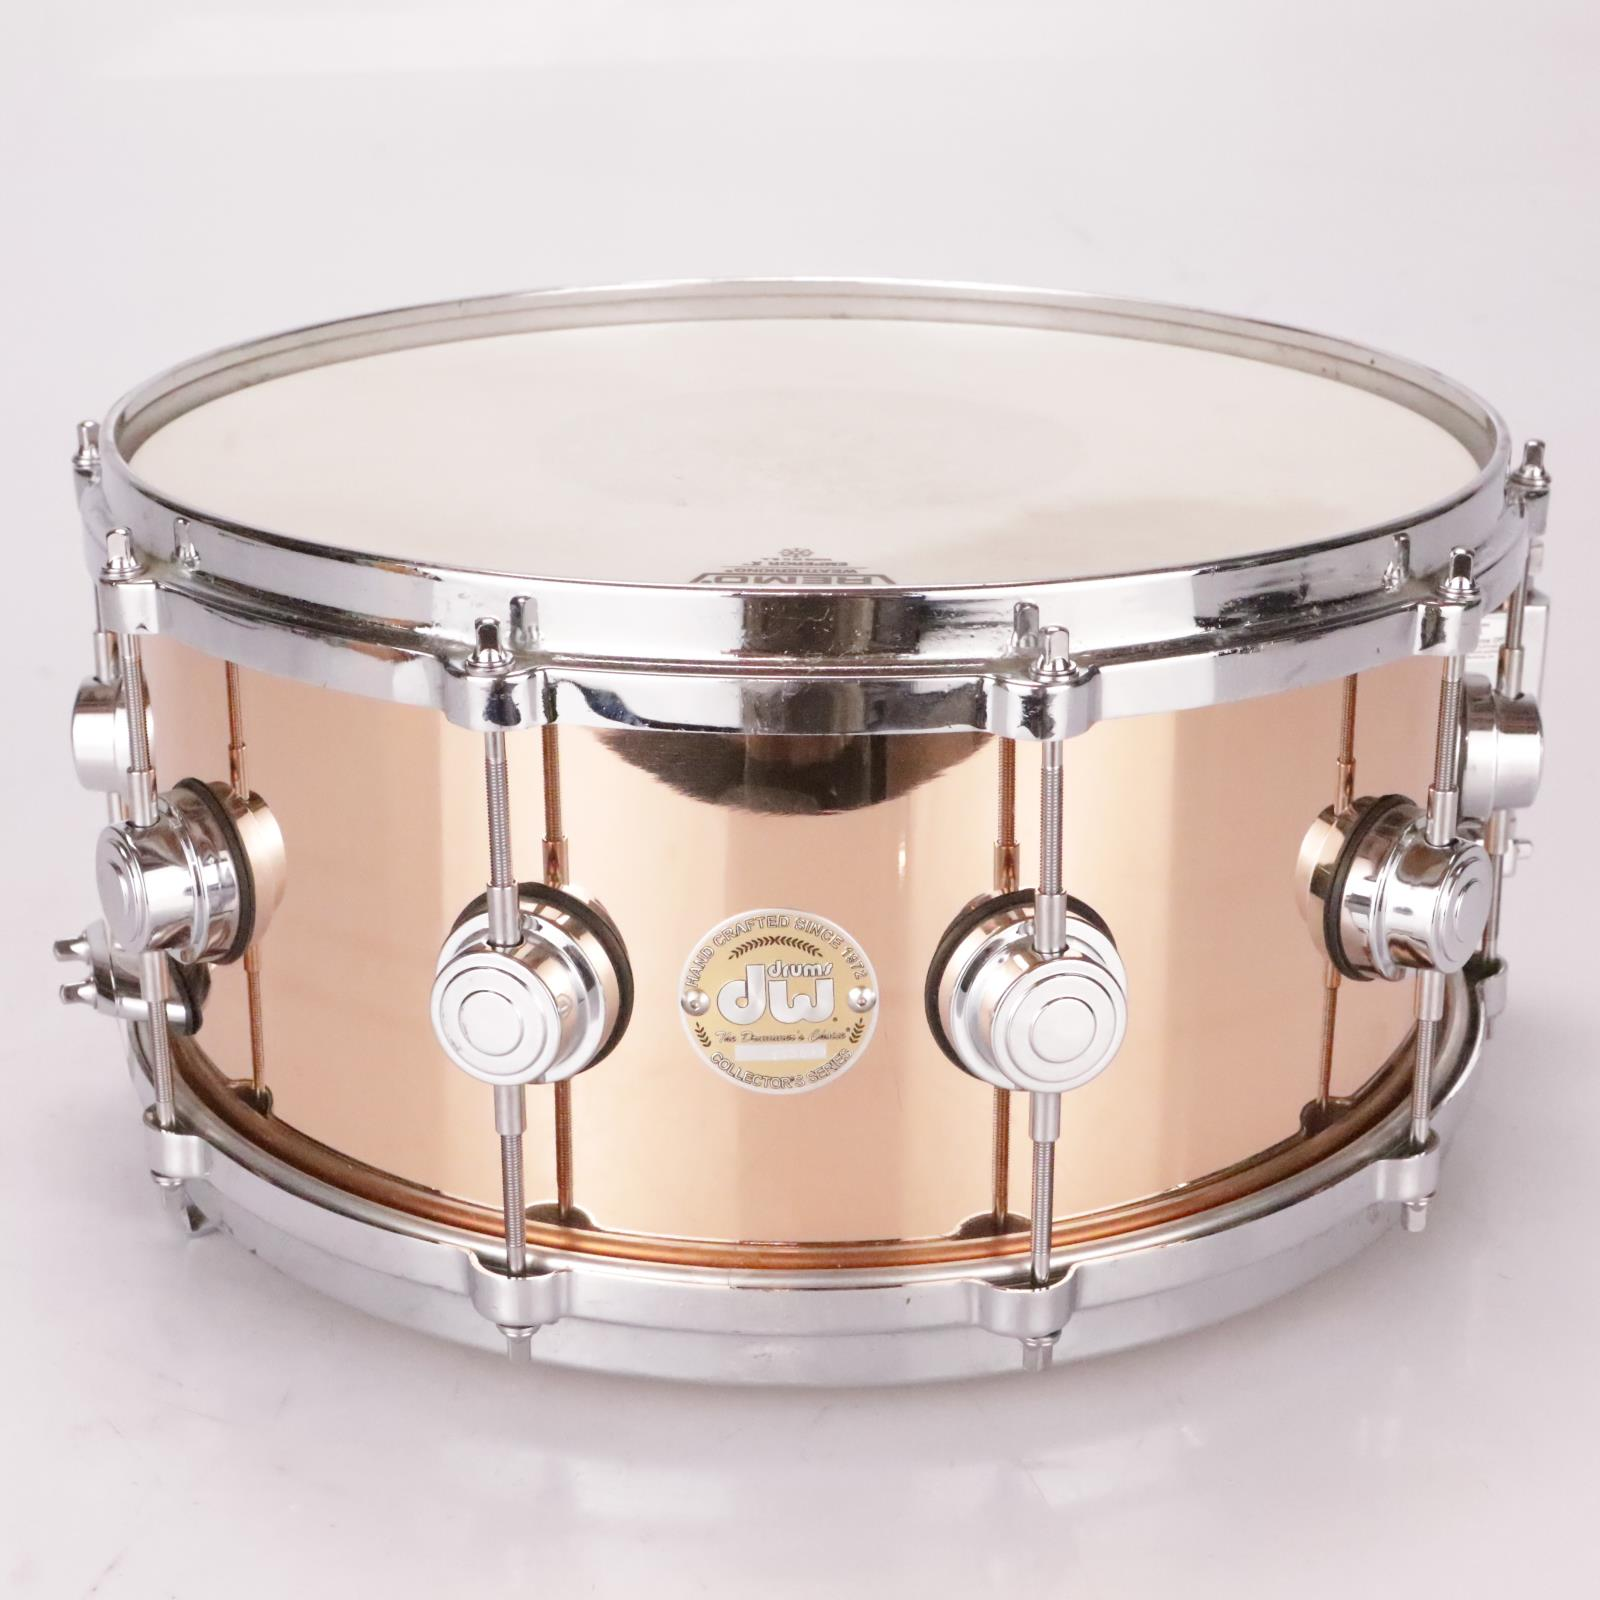 """DW 14"""" x 6.5"""" Collector's Series Bronze Shell Smooth Snare Drum #36928"""